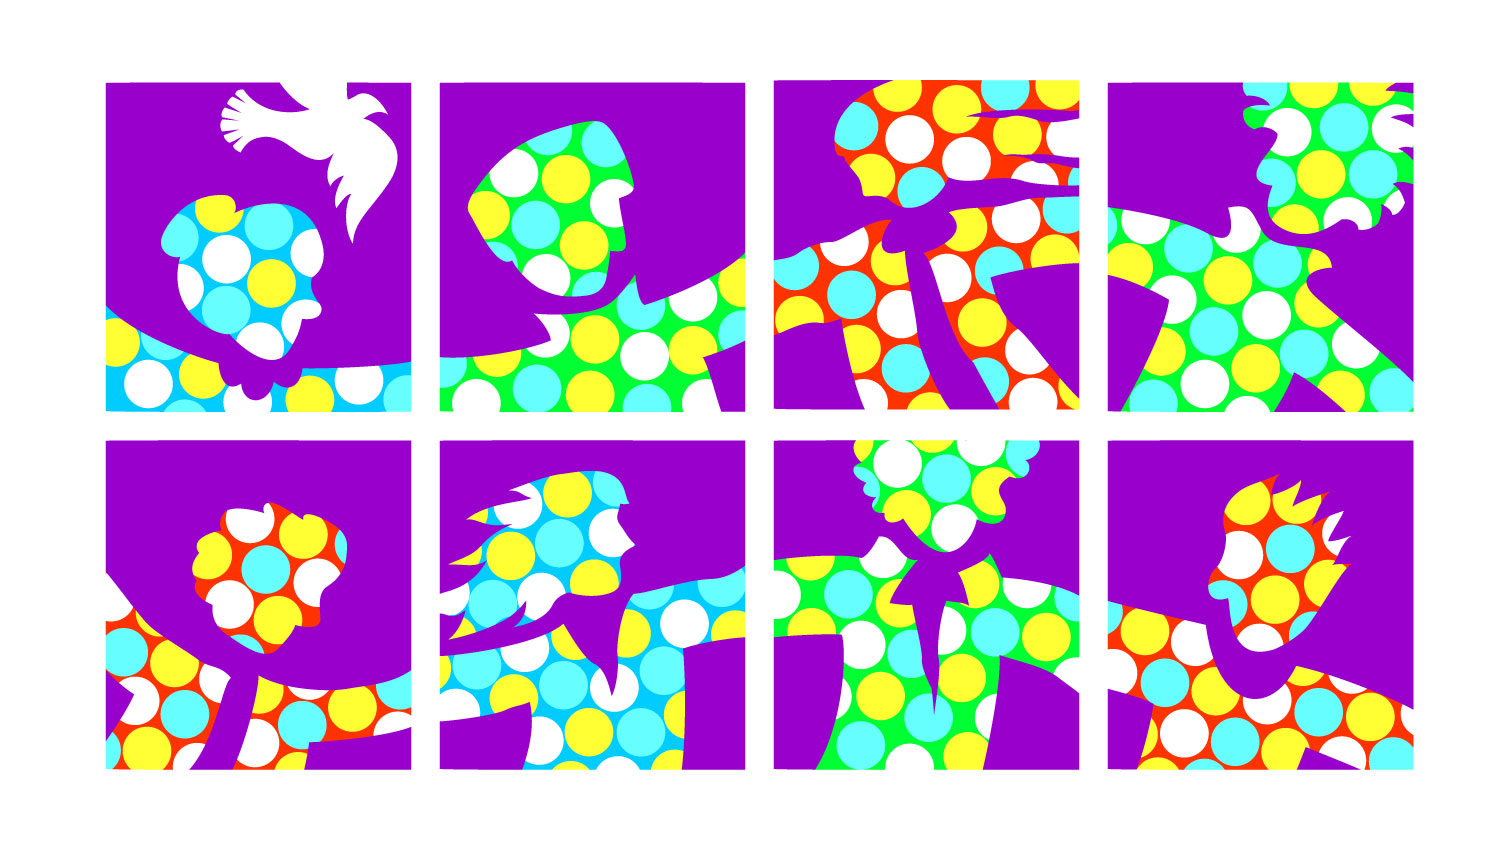 Holiday Sparkles   Gary Brandenburg     This shows one illustration from a 2-page holiday card that I distributed as an Acrobat PDF document. It included elements that sparkled as the user rolled over the image. __________